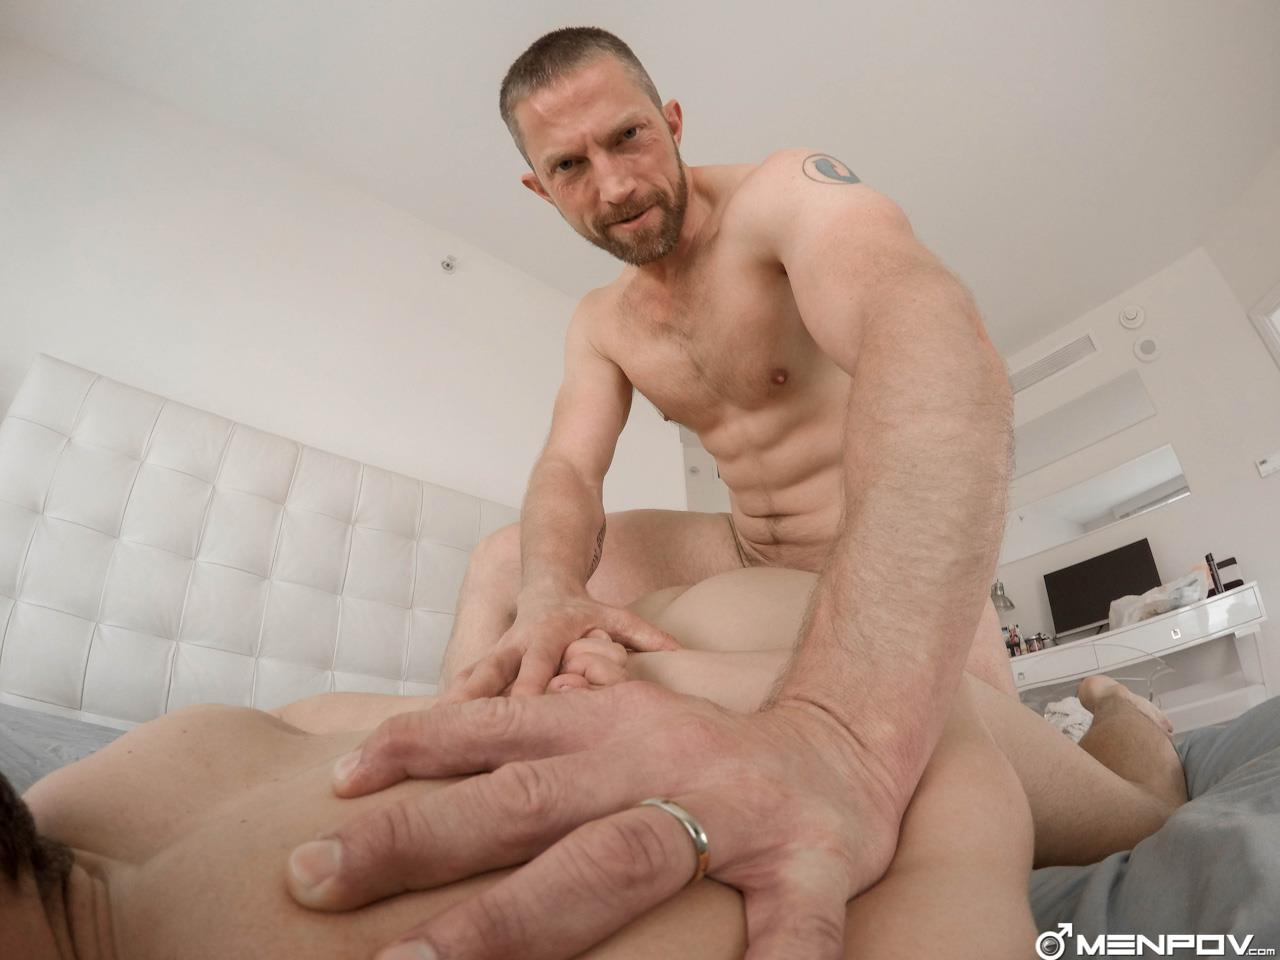 Amateur daddy and boy gay porn gallery and 7